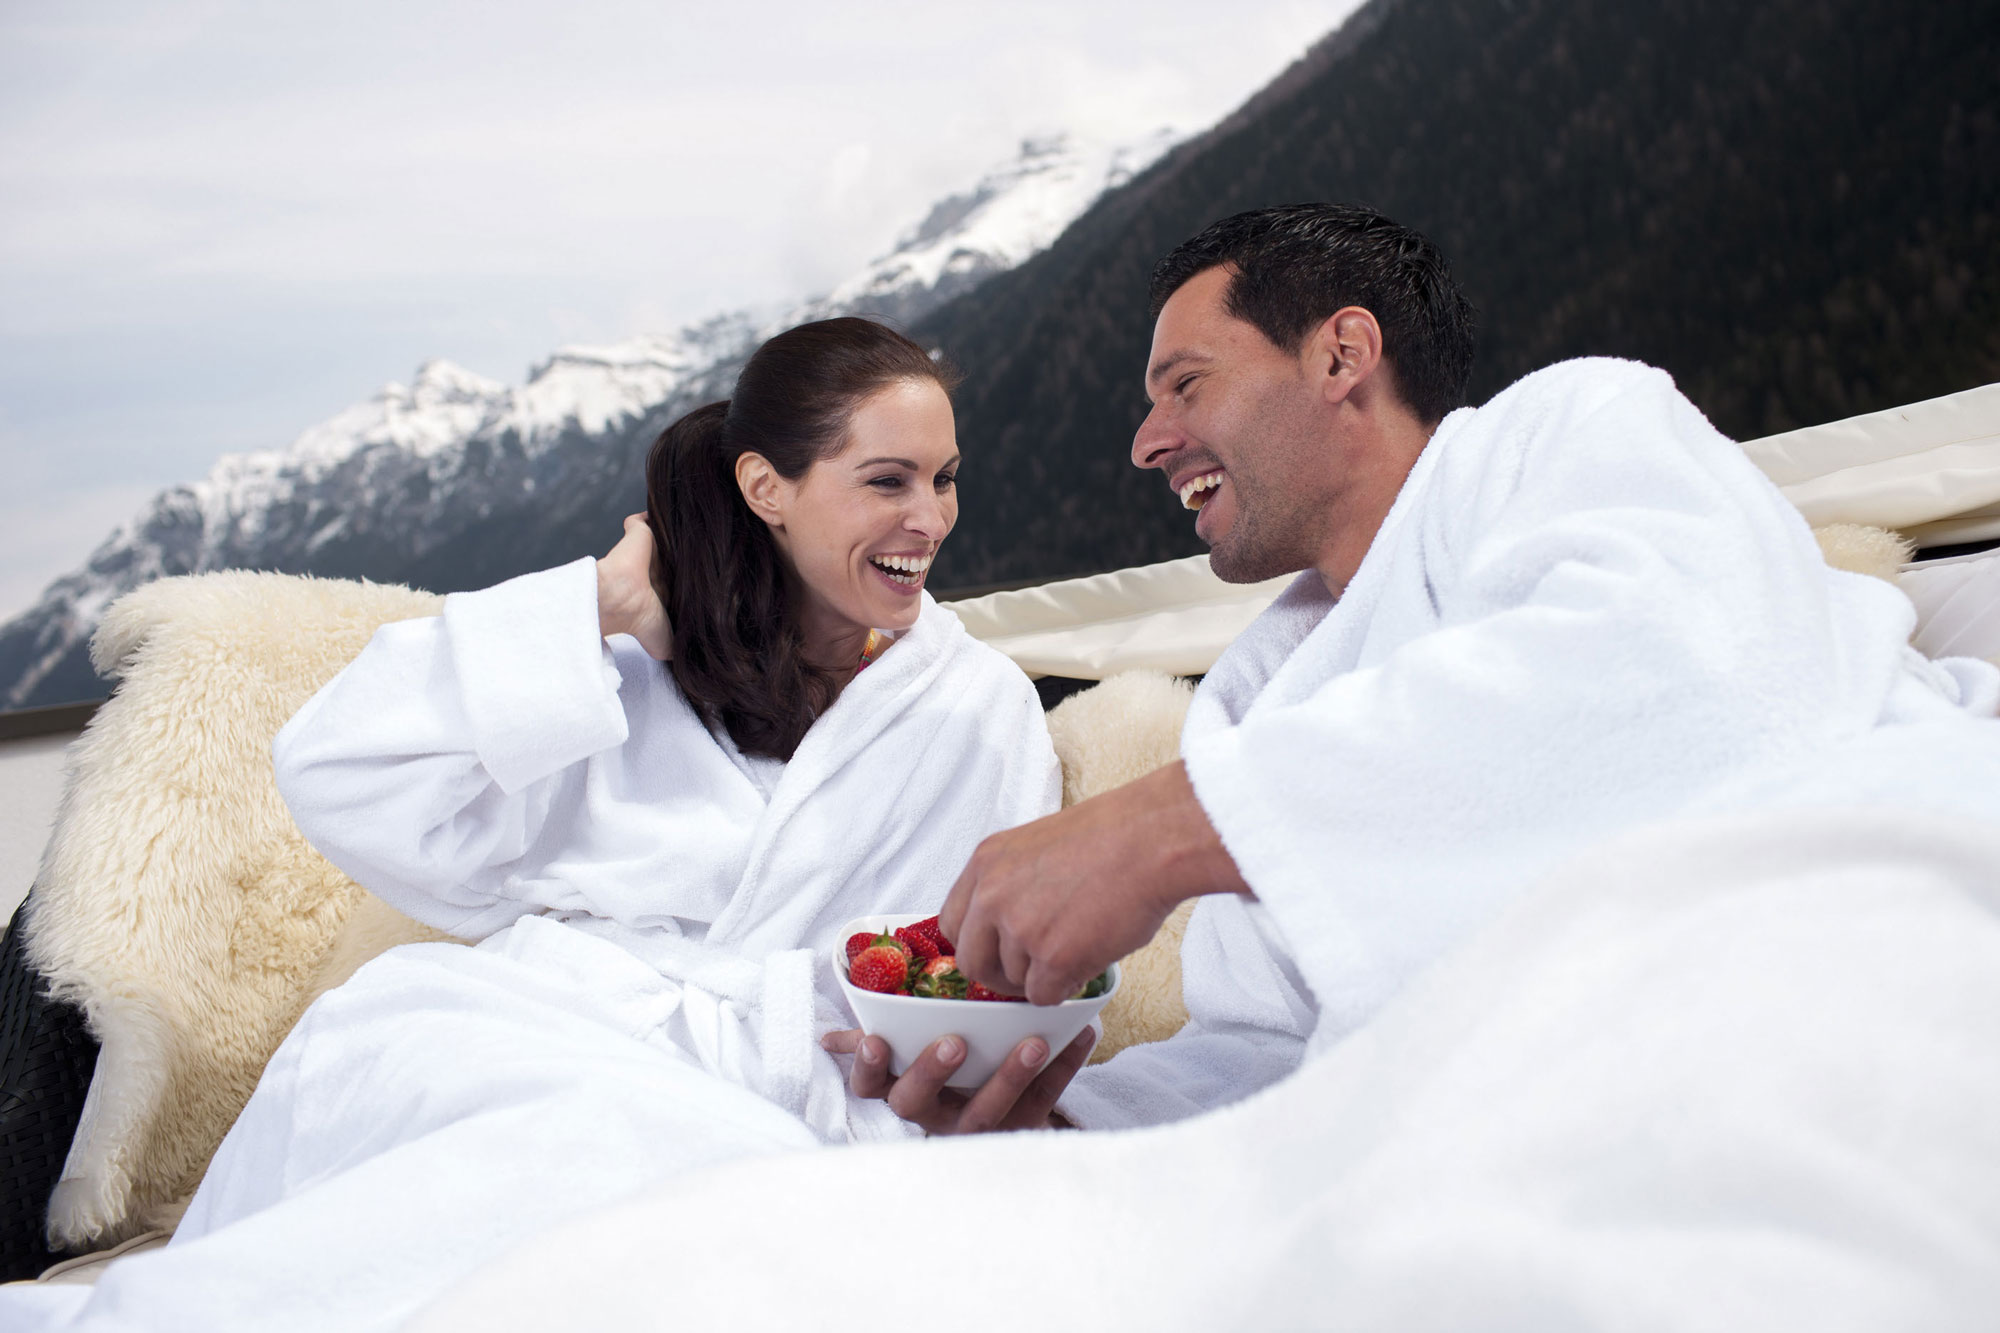 Spa holiday in the Stubai Valley – Relaxation at the Alpenhotel Kindl